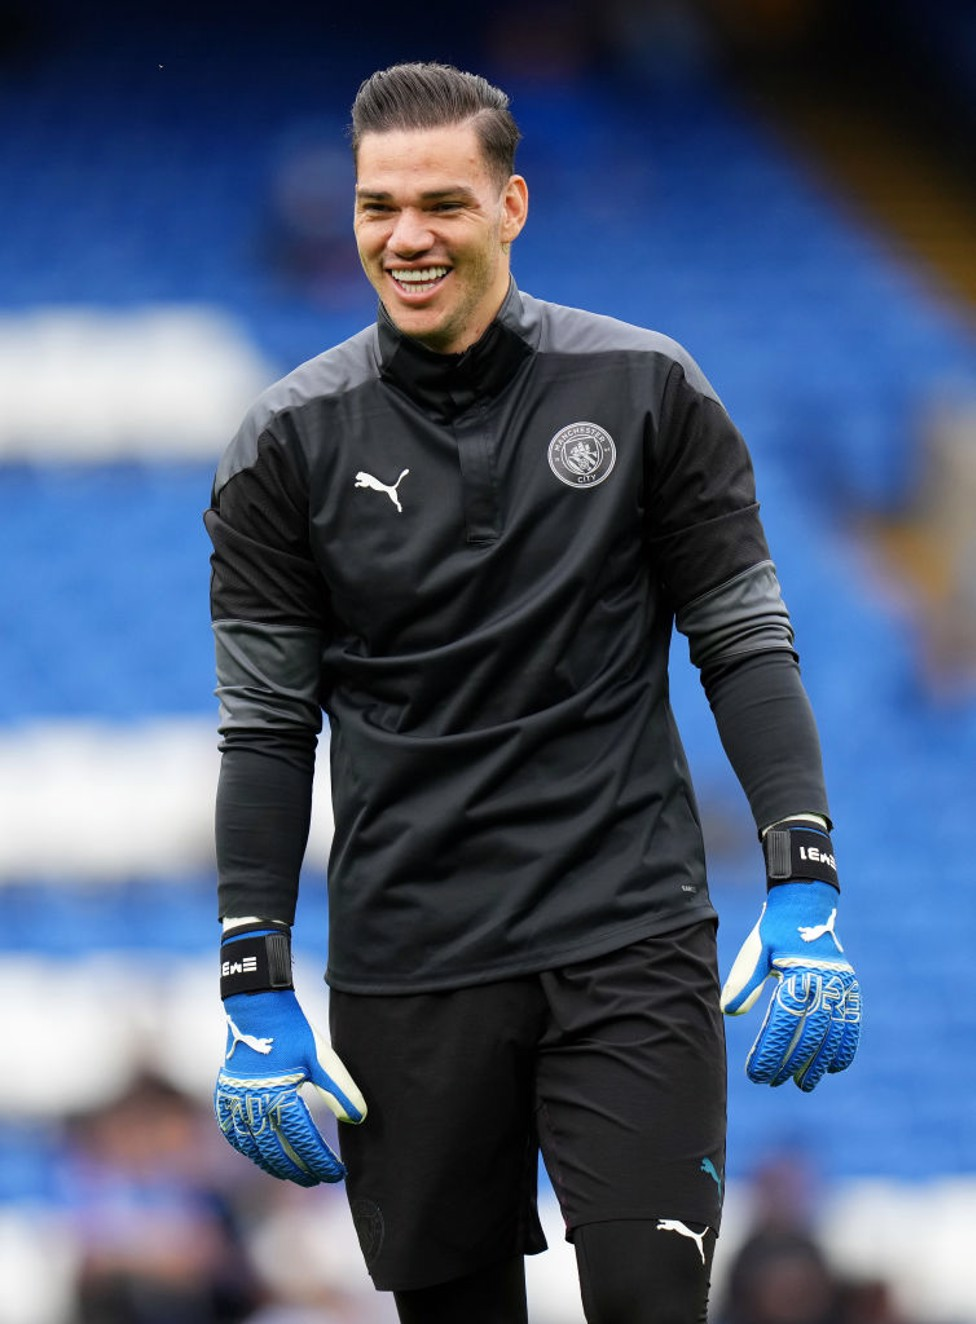 ALL SMILES : Ederson in relaxed mood ahead of kick-off.